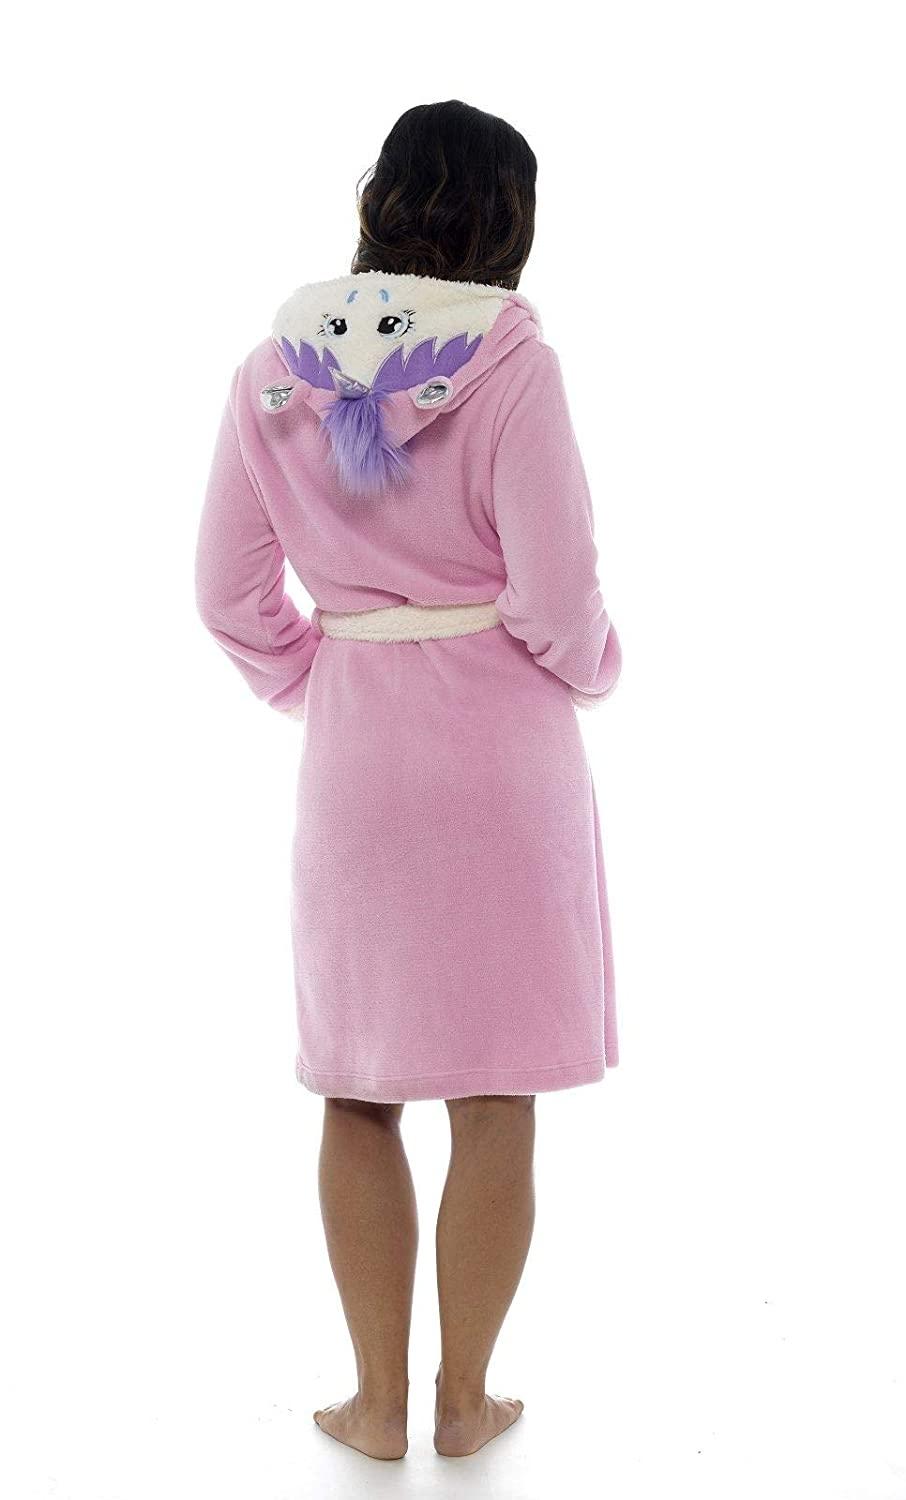 Ladies Girls Unicorn 3D Hooded Pink Dressing Gown Sherpa Lining  Mother Daughter Matching Mini Me Supersoft Fleece  Amazon.co.uk  Clothing 310101c27